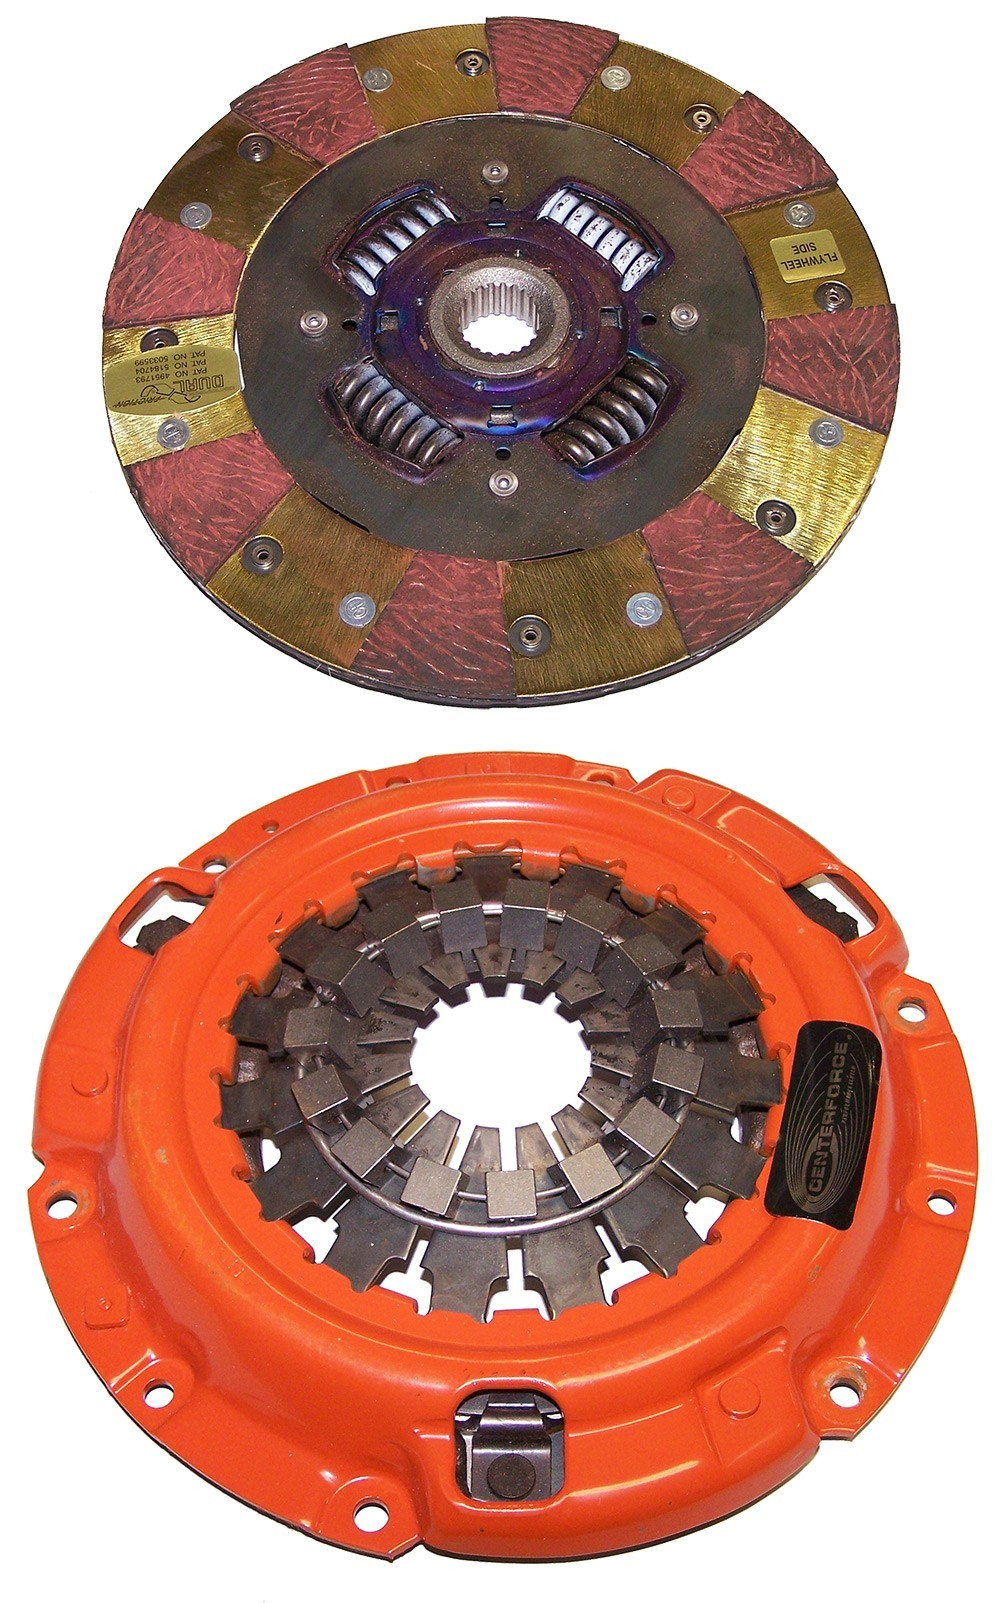 87-88 Turbo Rx7 Centerforce Dual Friction Clutch Kit (DF532009)